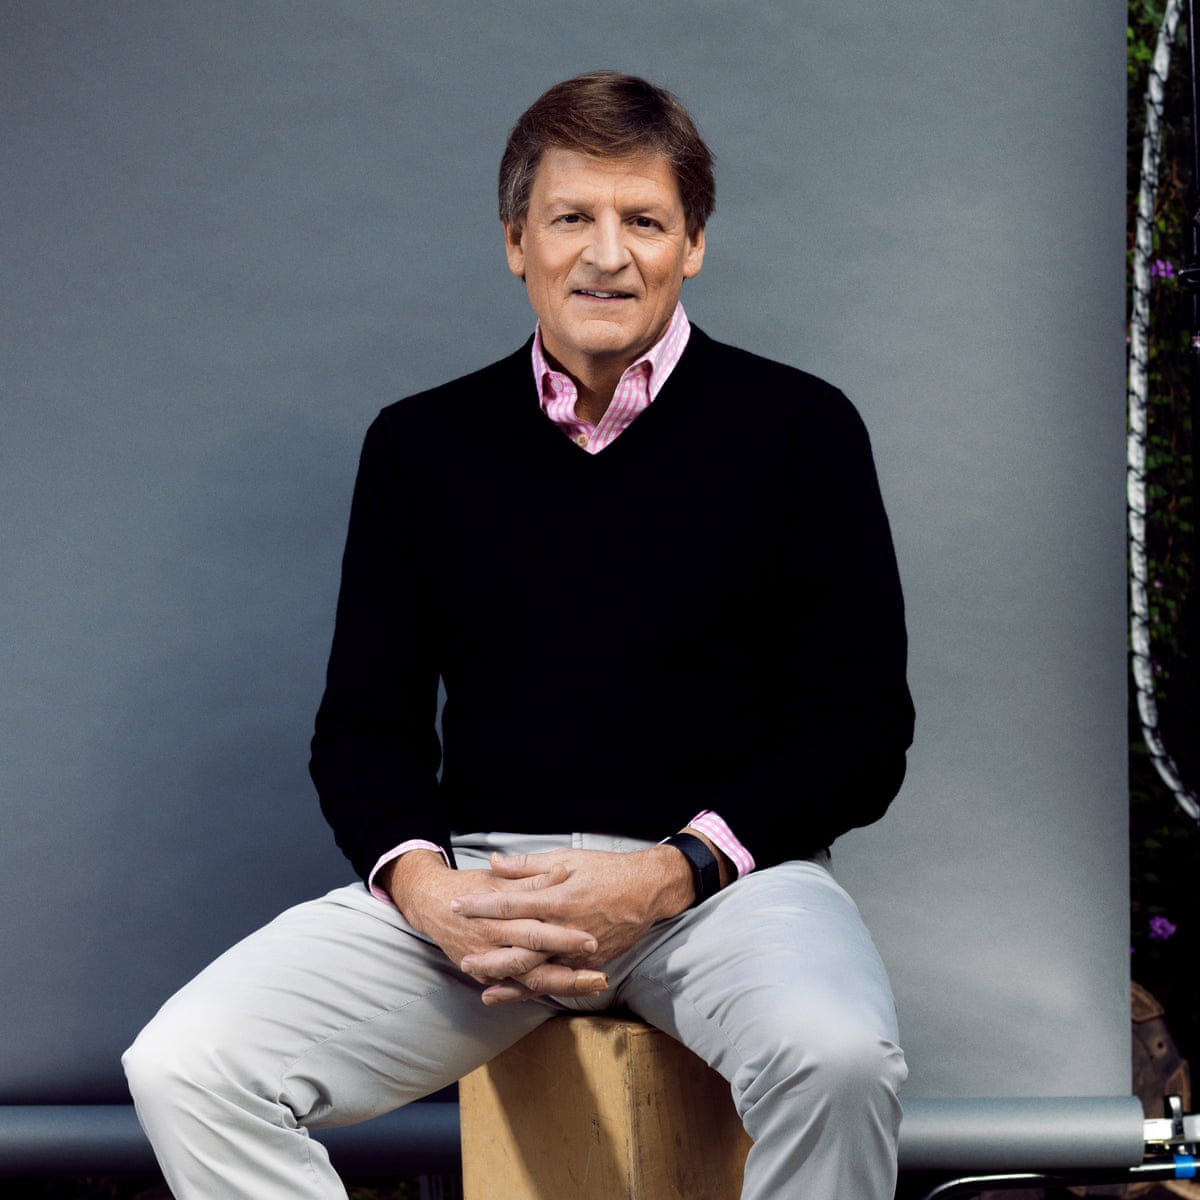 The 60-year old son of father (?) and mother(?) Michael Lewis in 2021 photo. Michael Lewis earned a  million dollar salary - leaving the net worth at  million in 2021